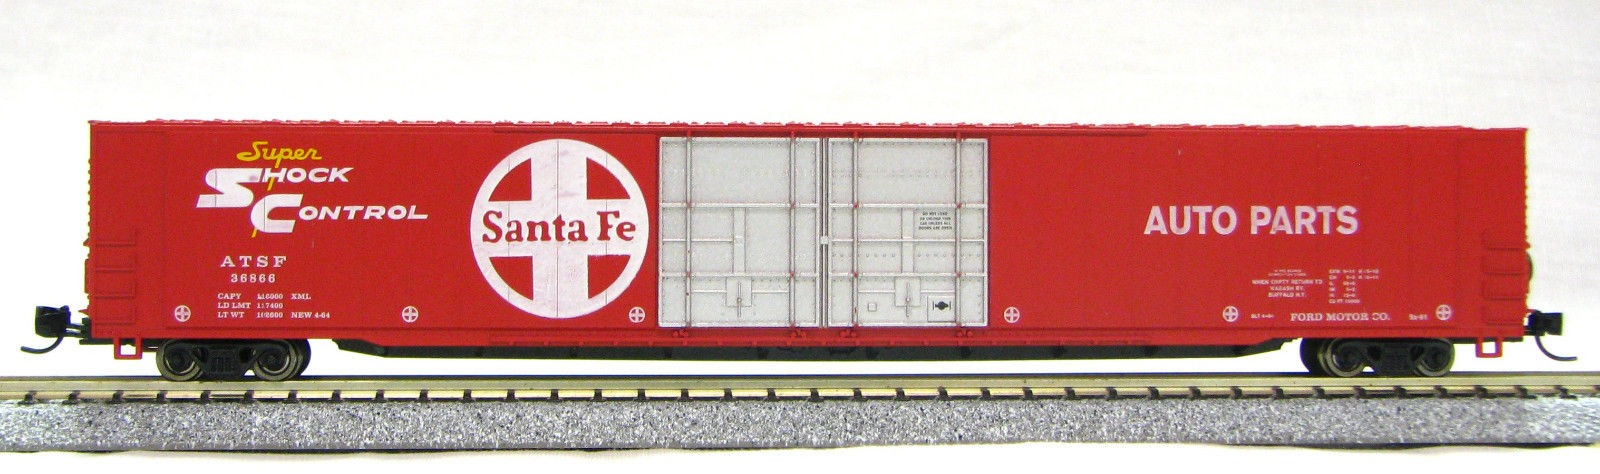 N Scale 4 Door 85 Ft Hi-Cube, Santa Fe,Shock Control (with MT couplers) 1-014663